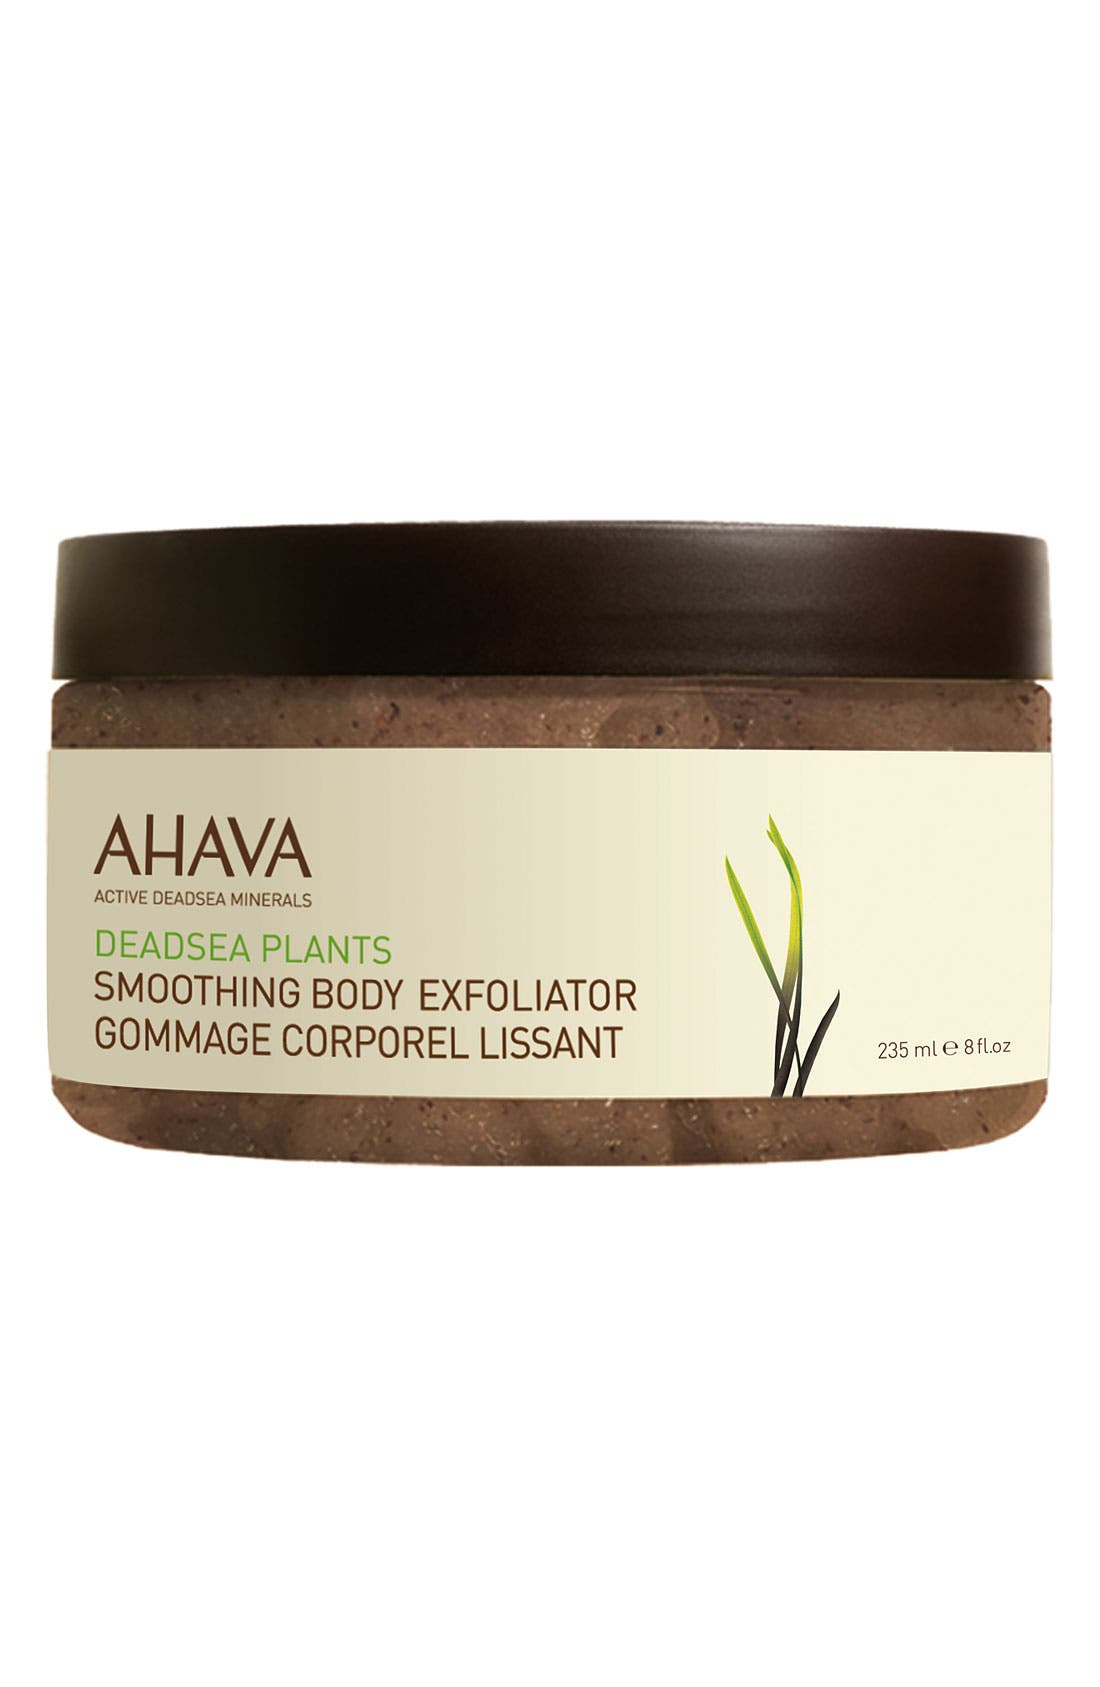 AHAVA 'DeadSea Plants' Smoothing Body Exfoliator